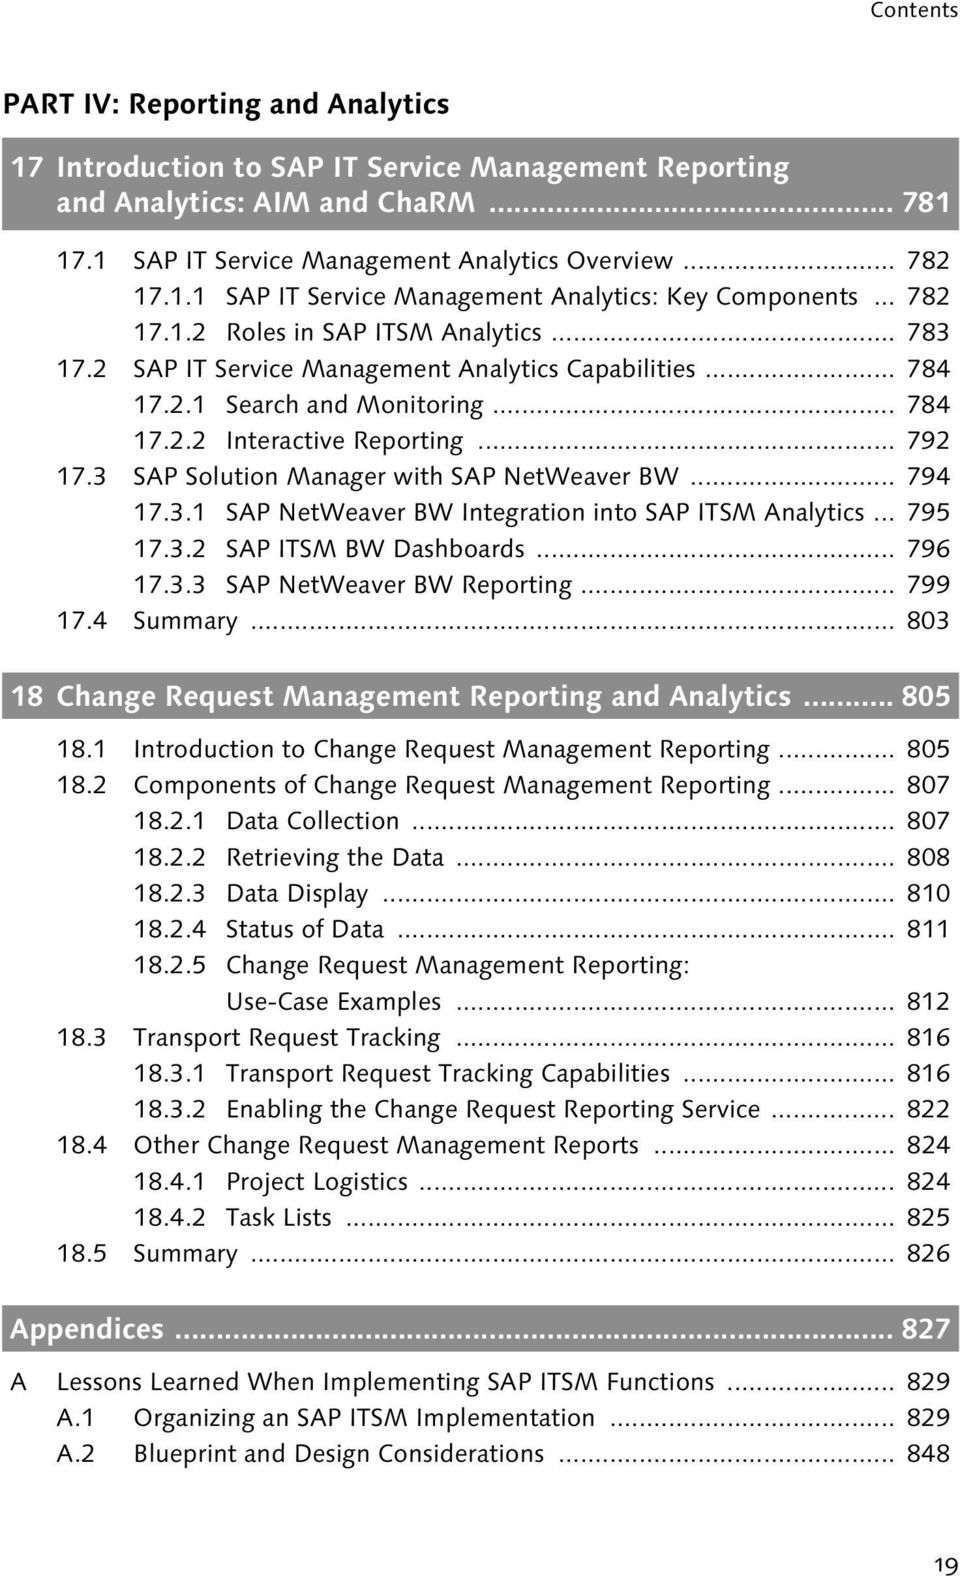 IT Service Management in SAP Solution Manager - PDF